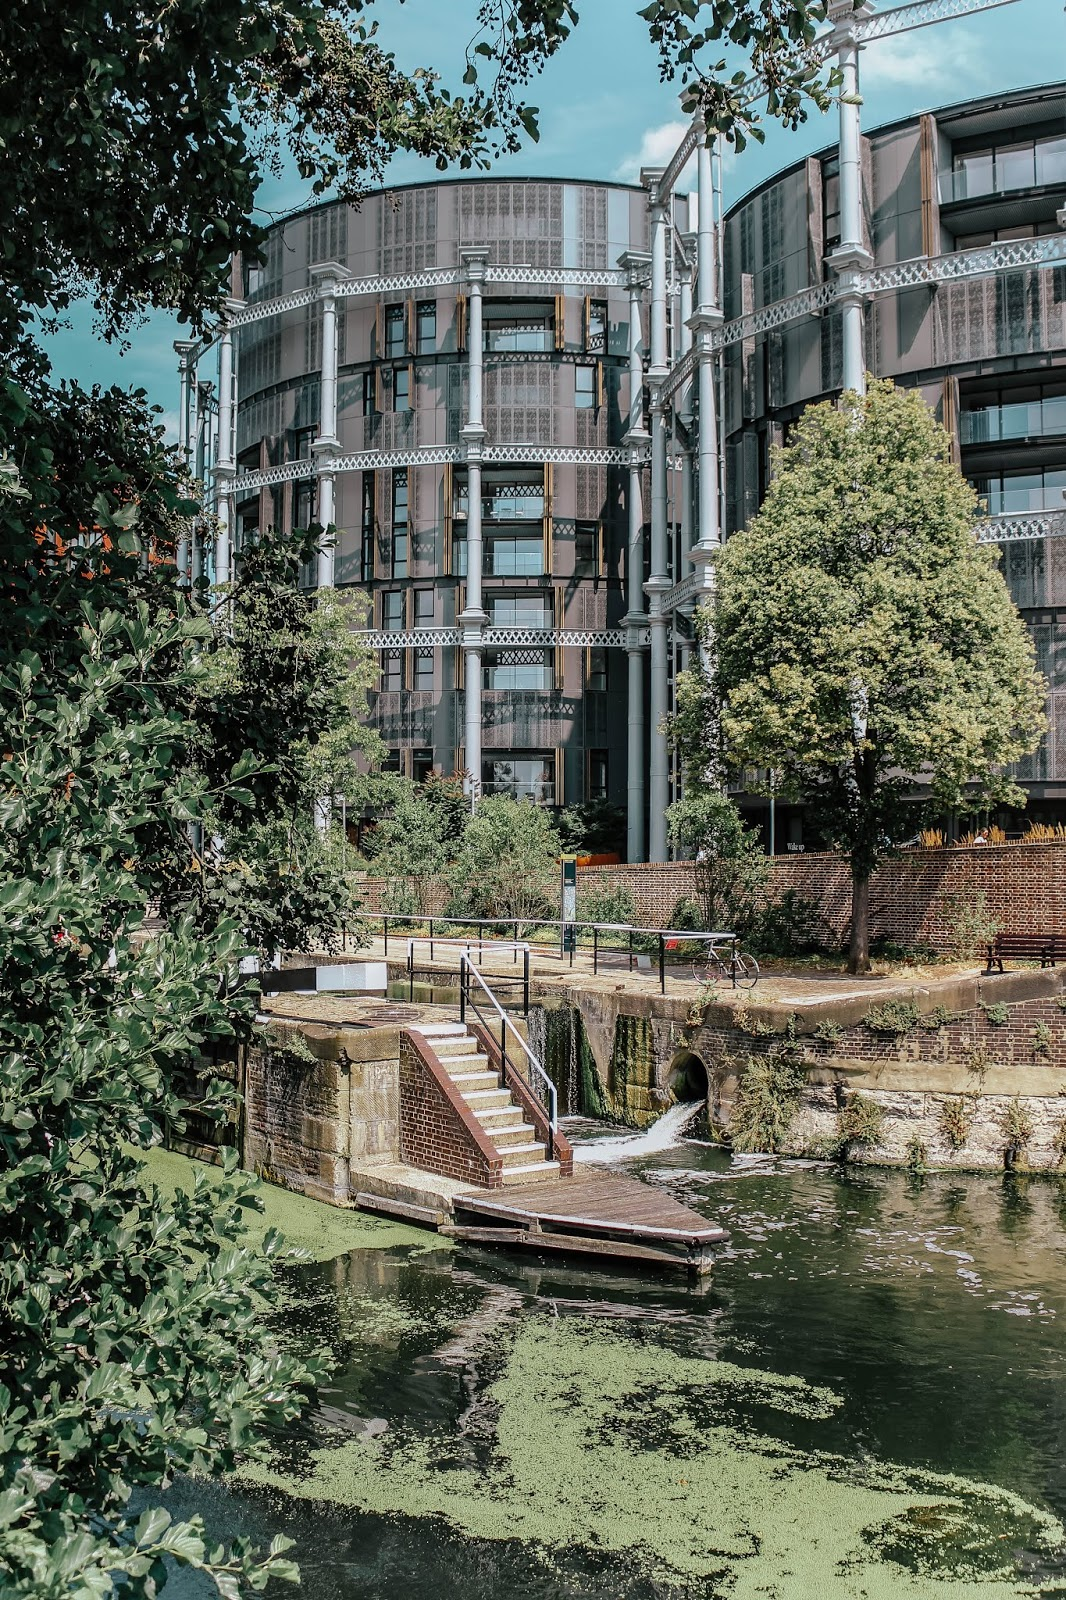 London Regent's Canal in Summer 2018